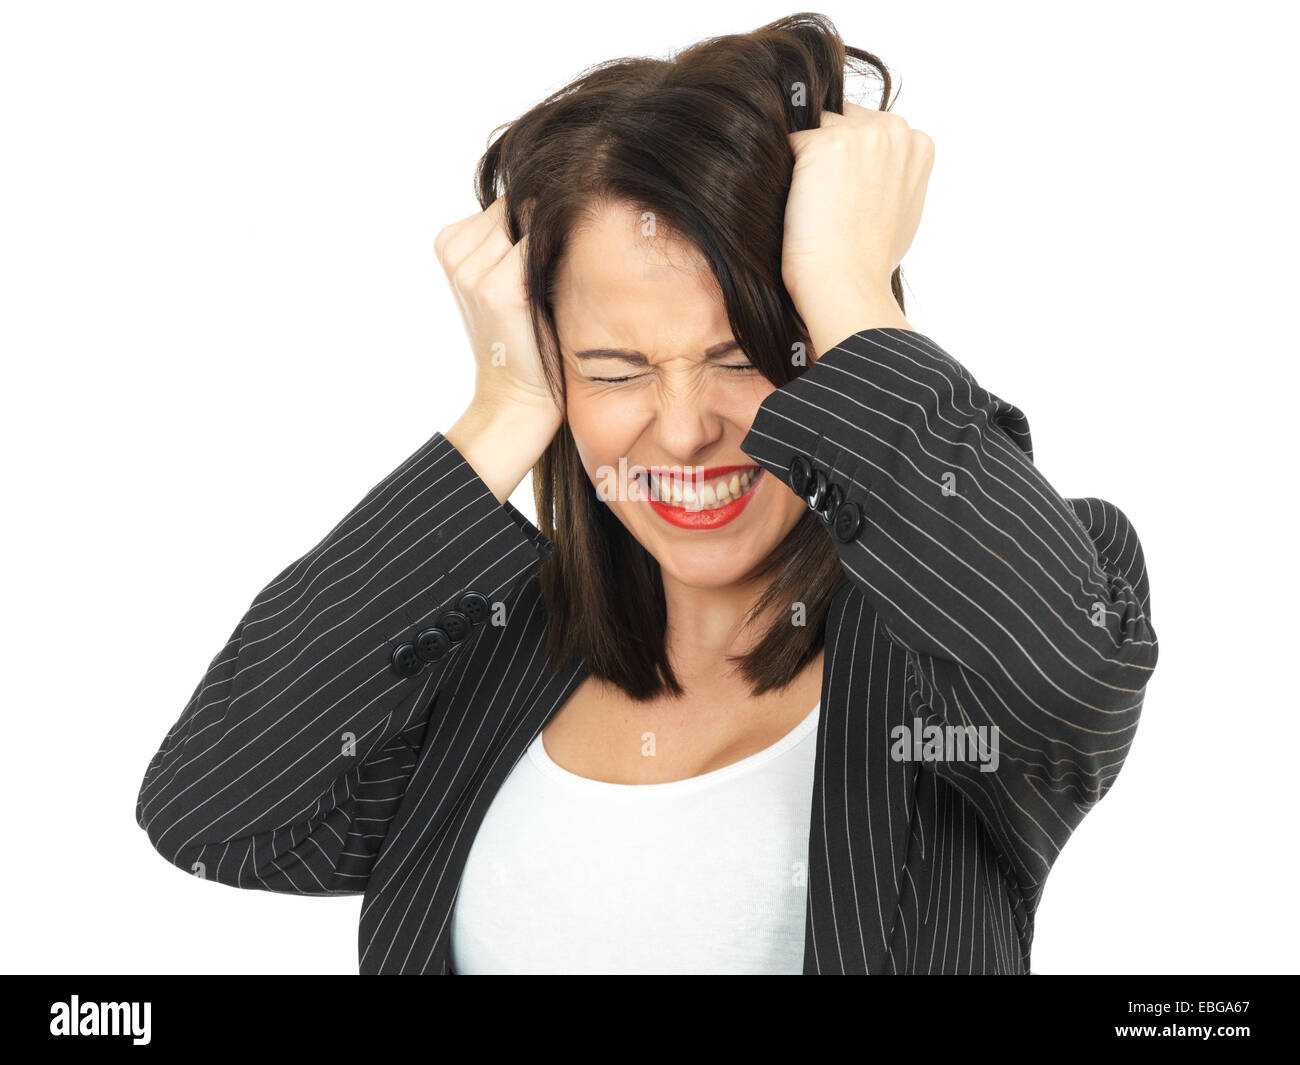 Angry Upset Young Business Woman Pulling Hair - Stock Image